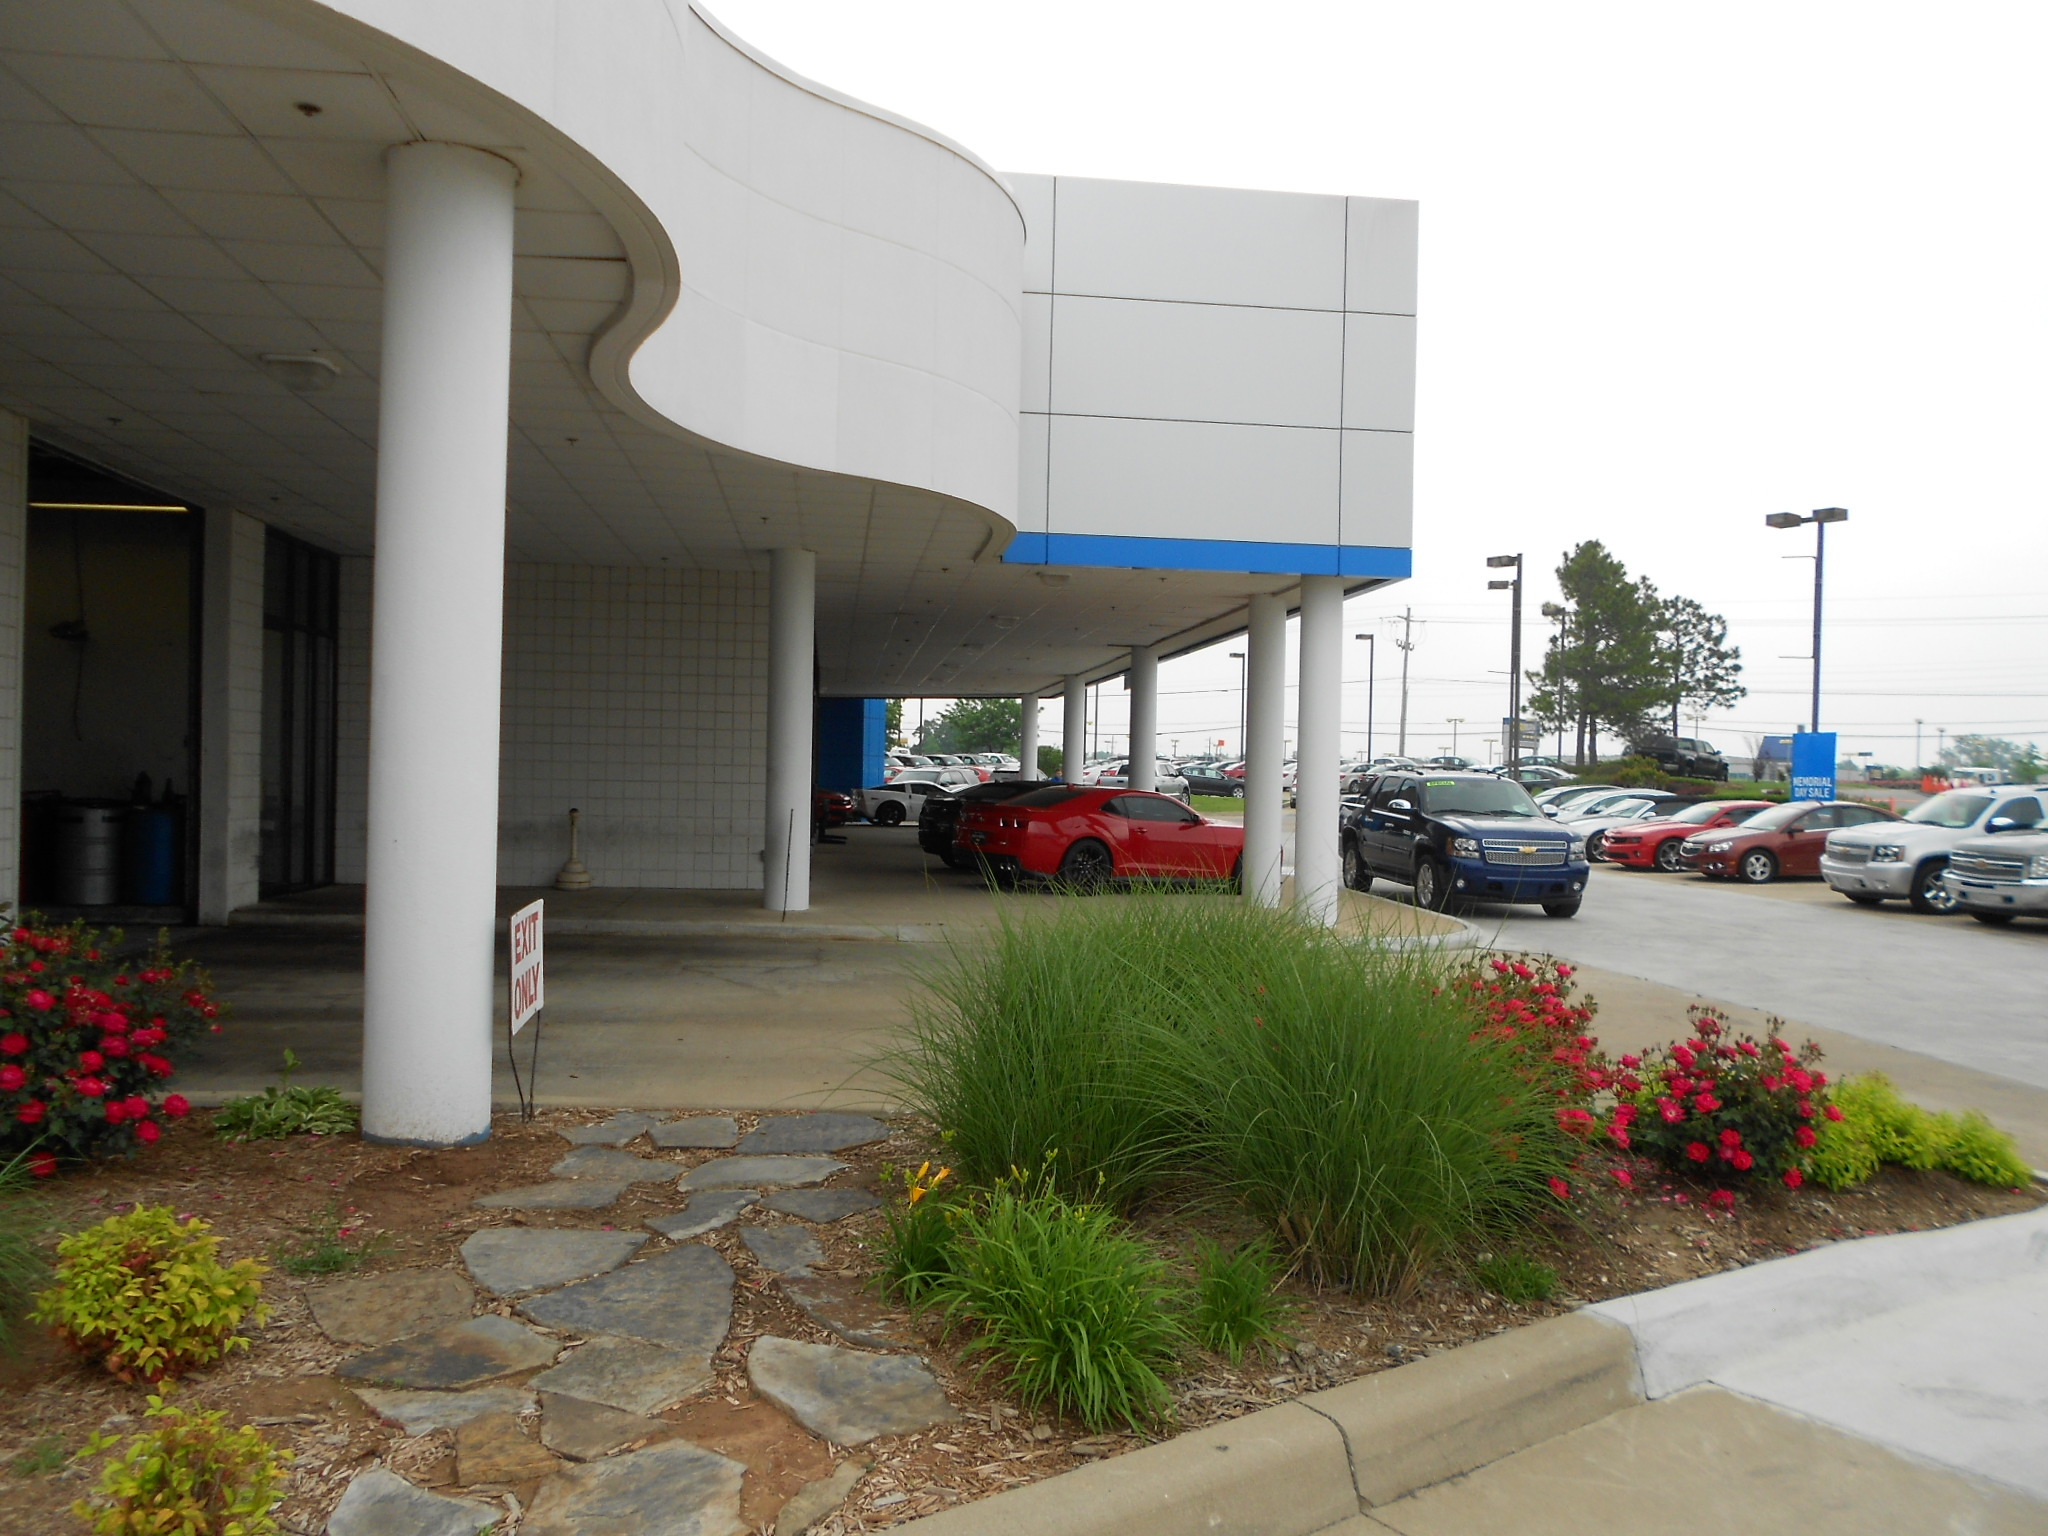 south pointe chevrolet in tulsa ok whitepages nearby businesses